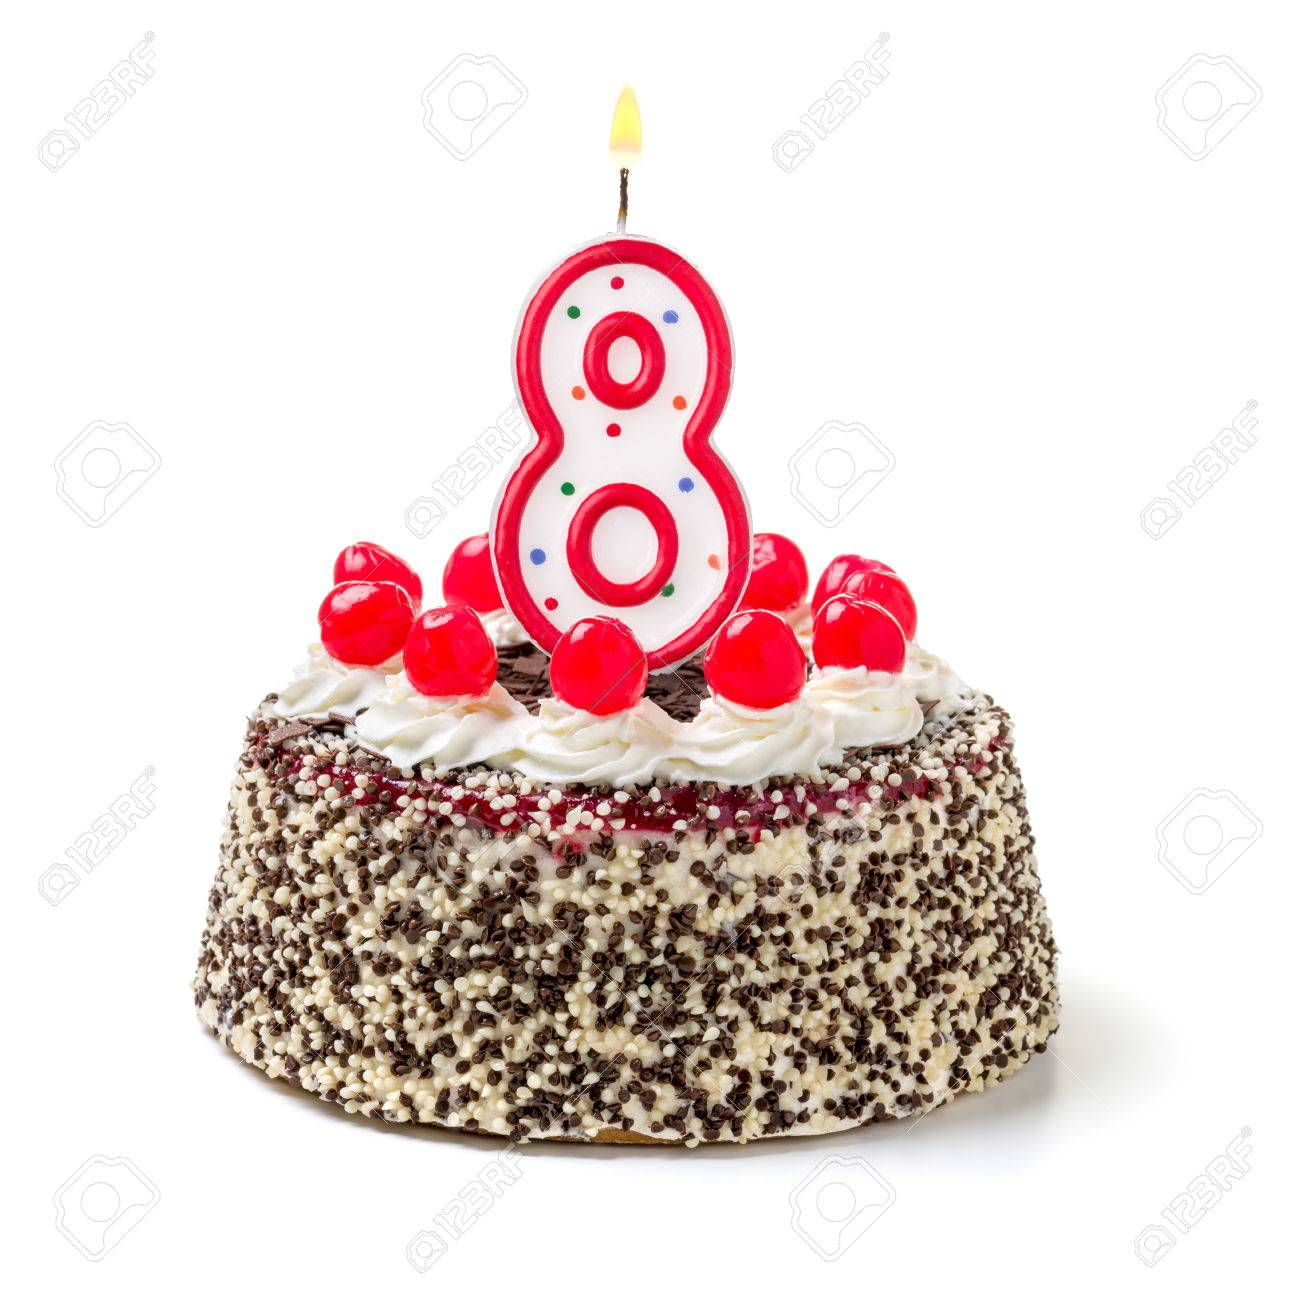 Birthday Cake With Burning Candle Number 8 Stock Photo